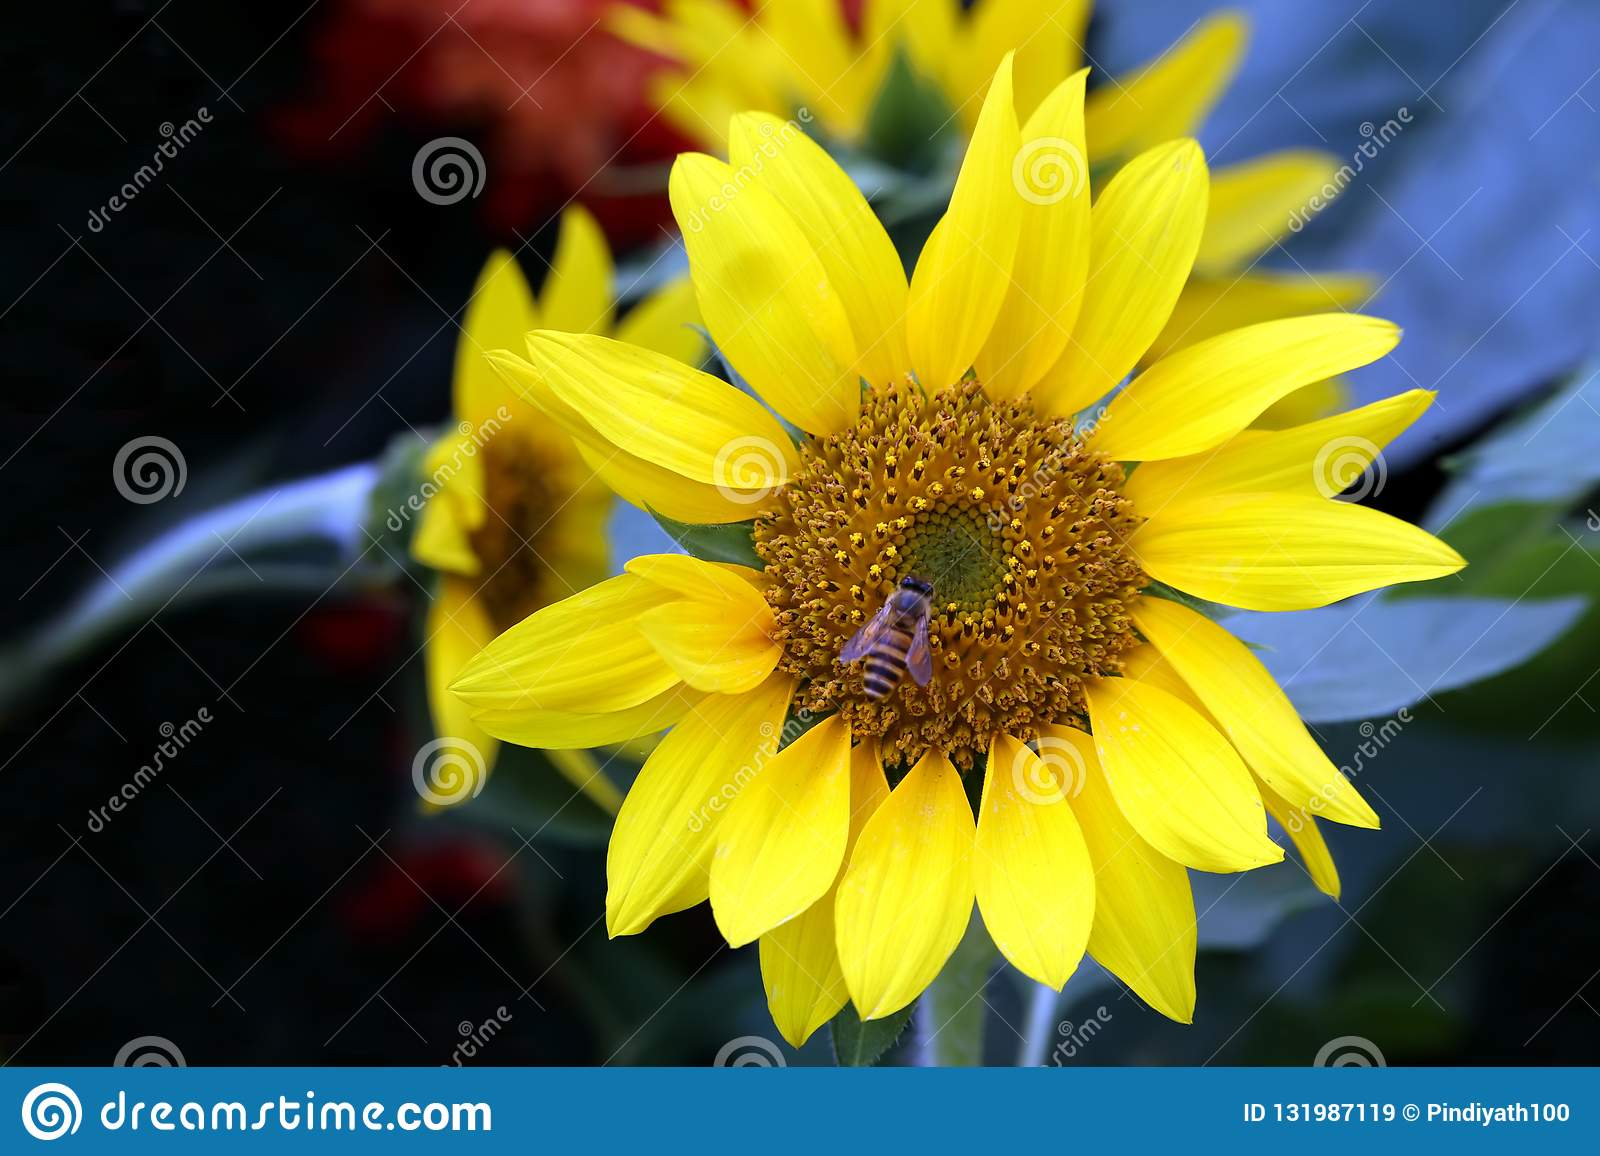 Sunflower and a bumble bee